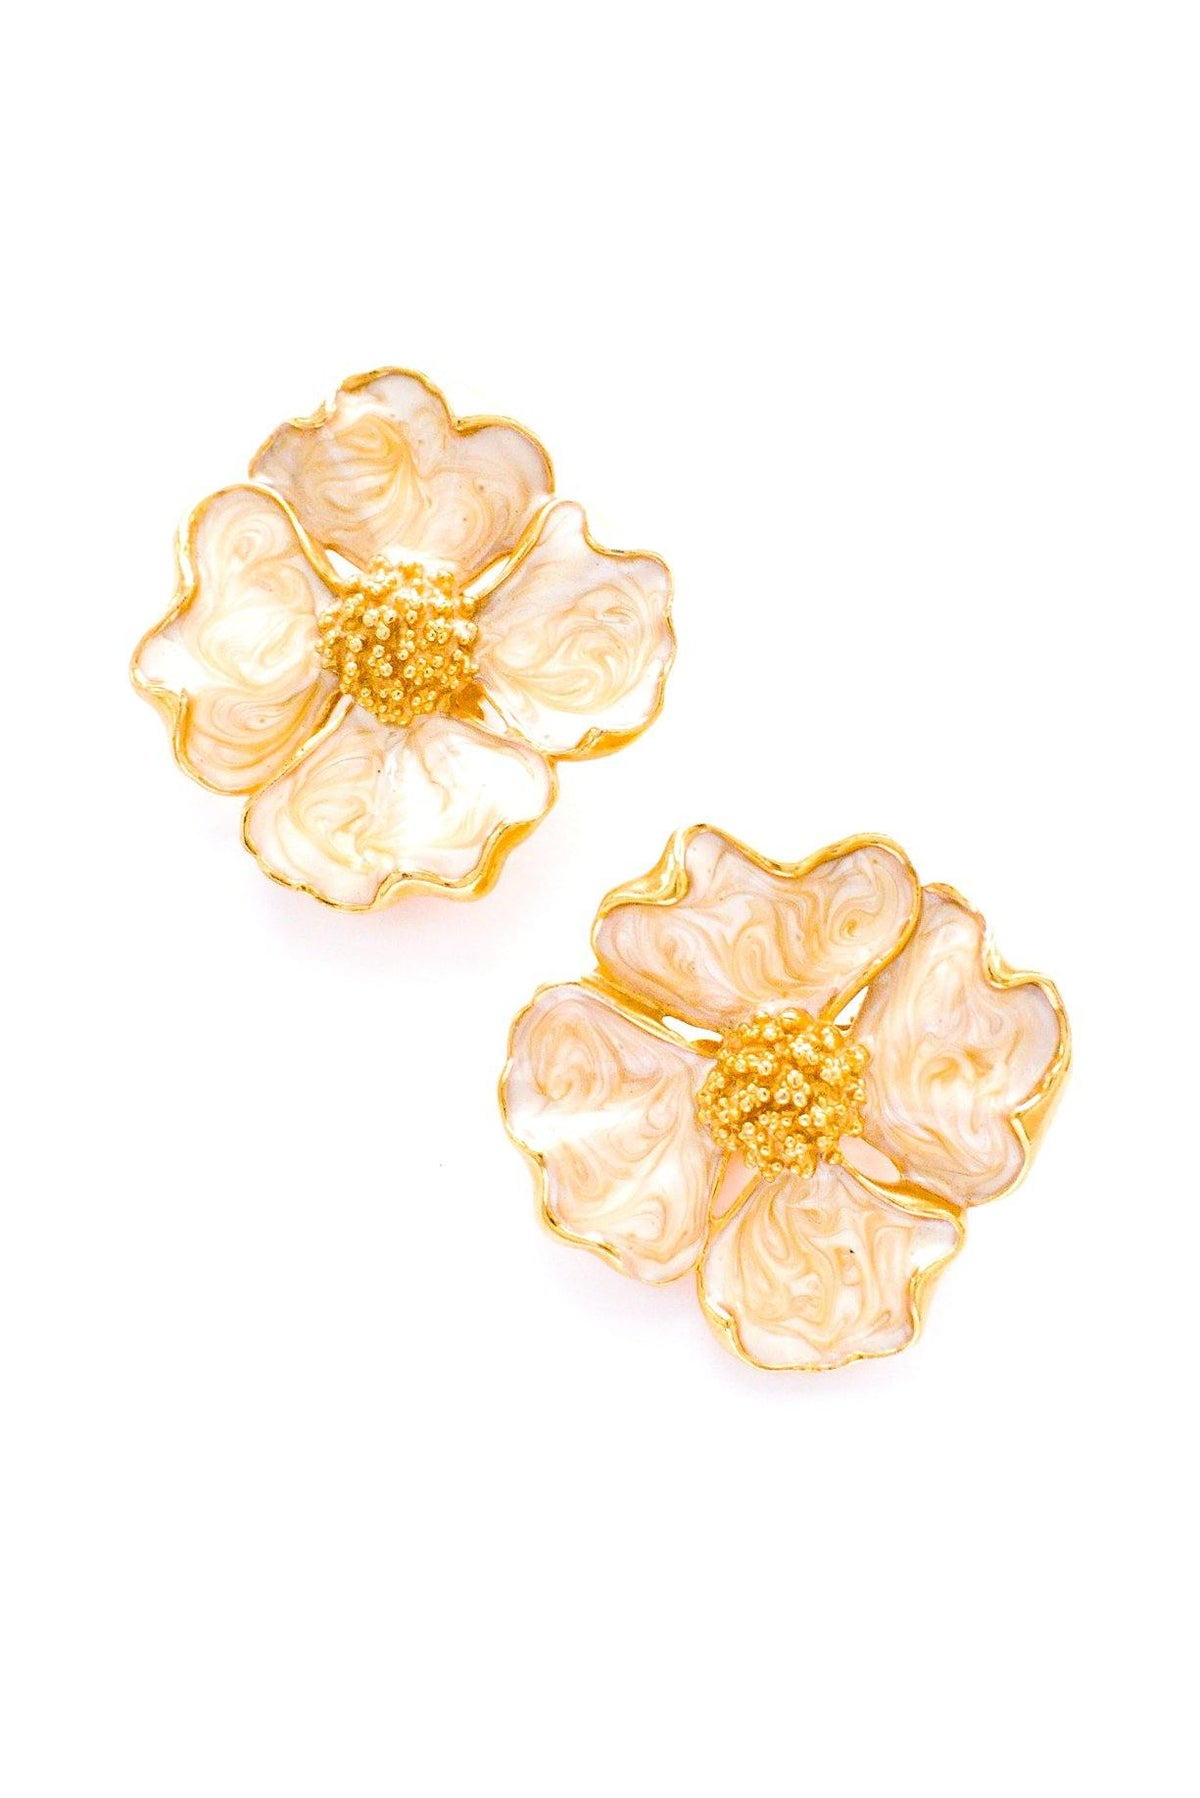 Vintage statement enamel floral earrings from Sweet & Spark.